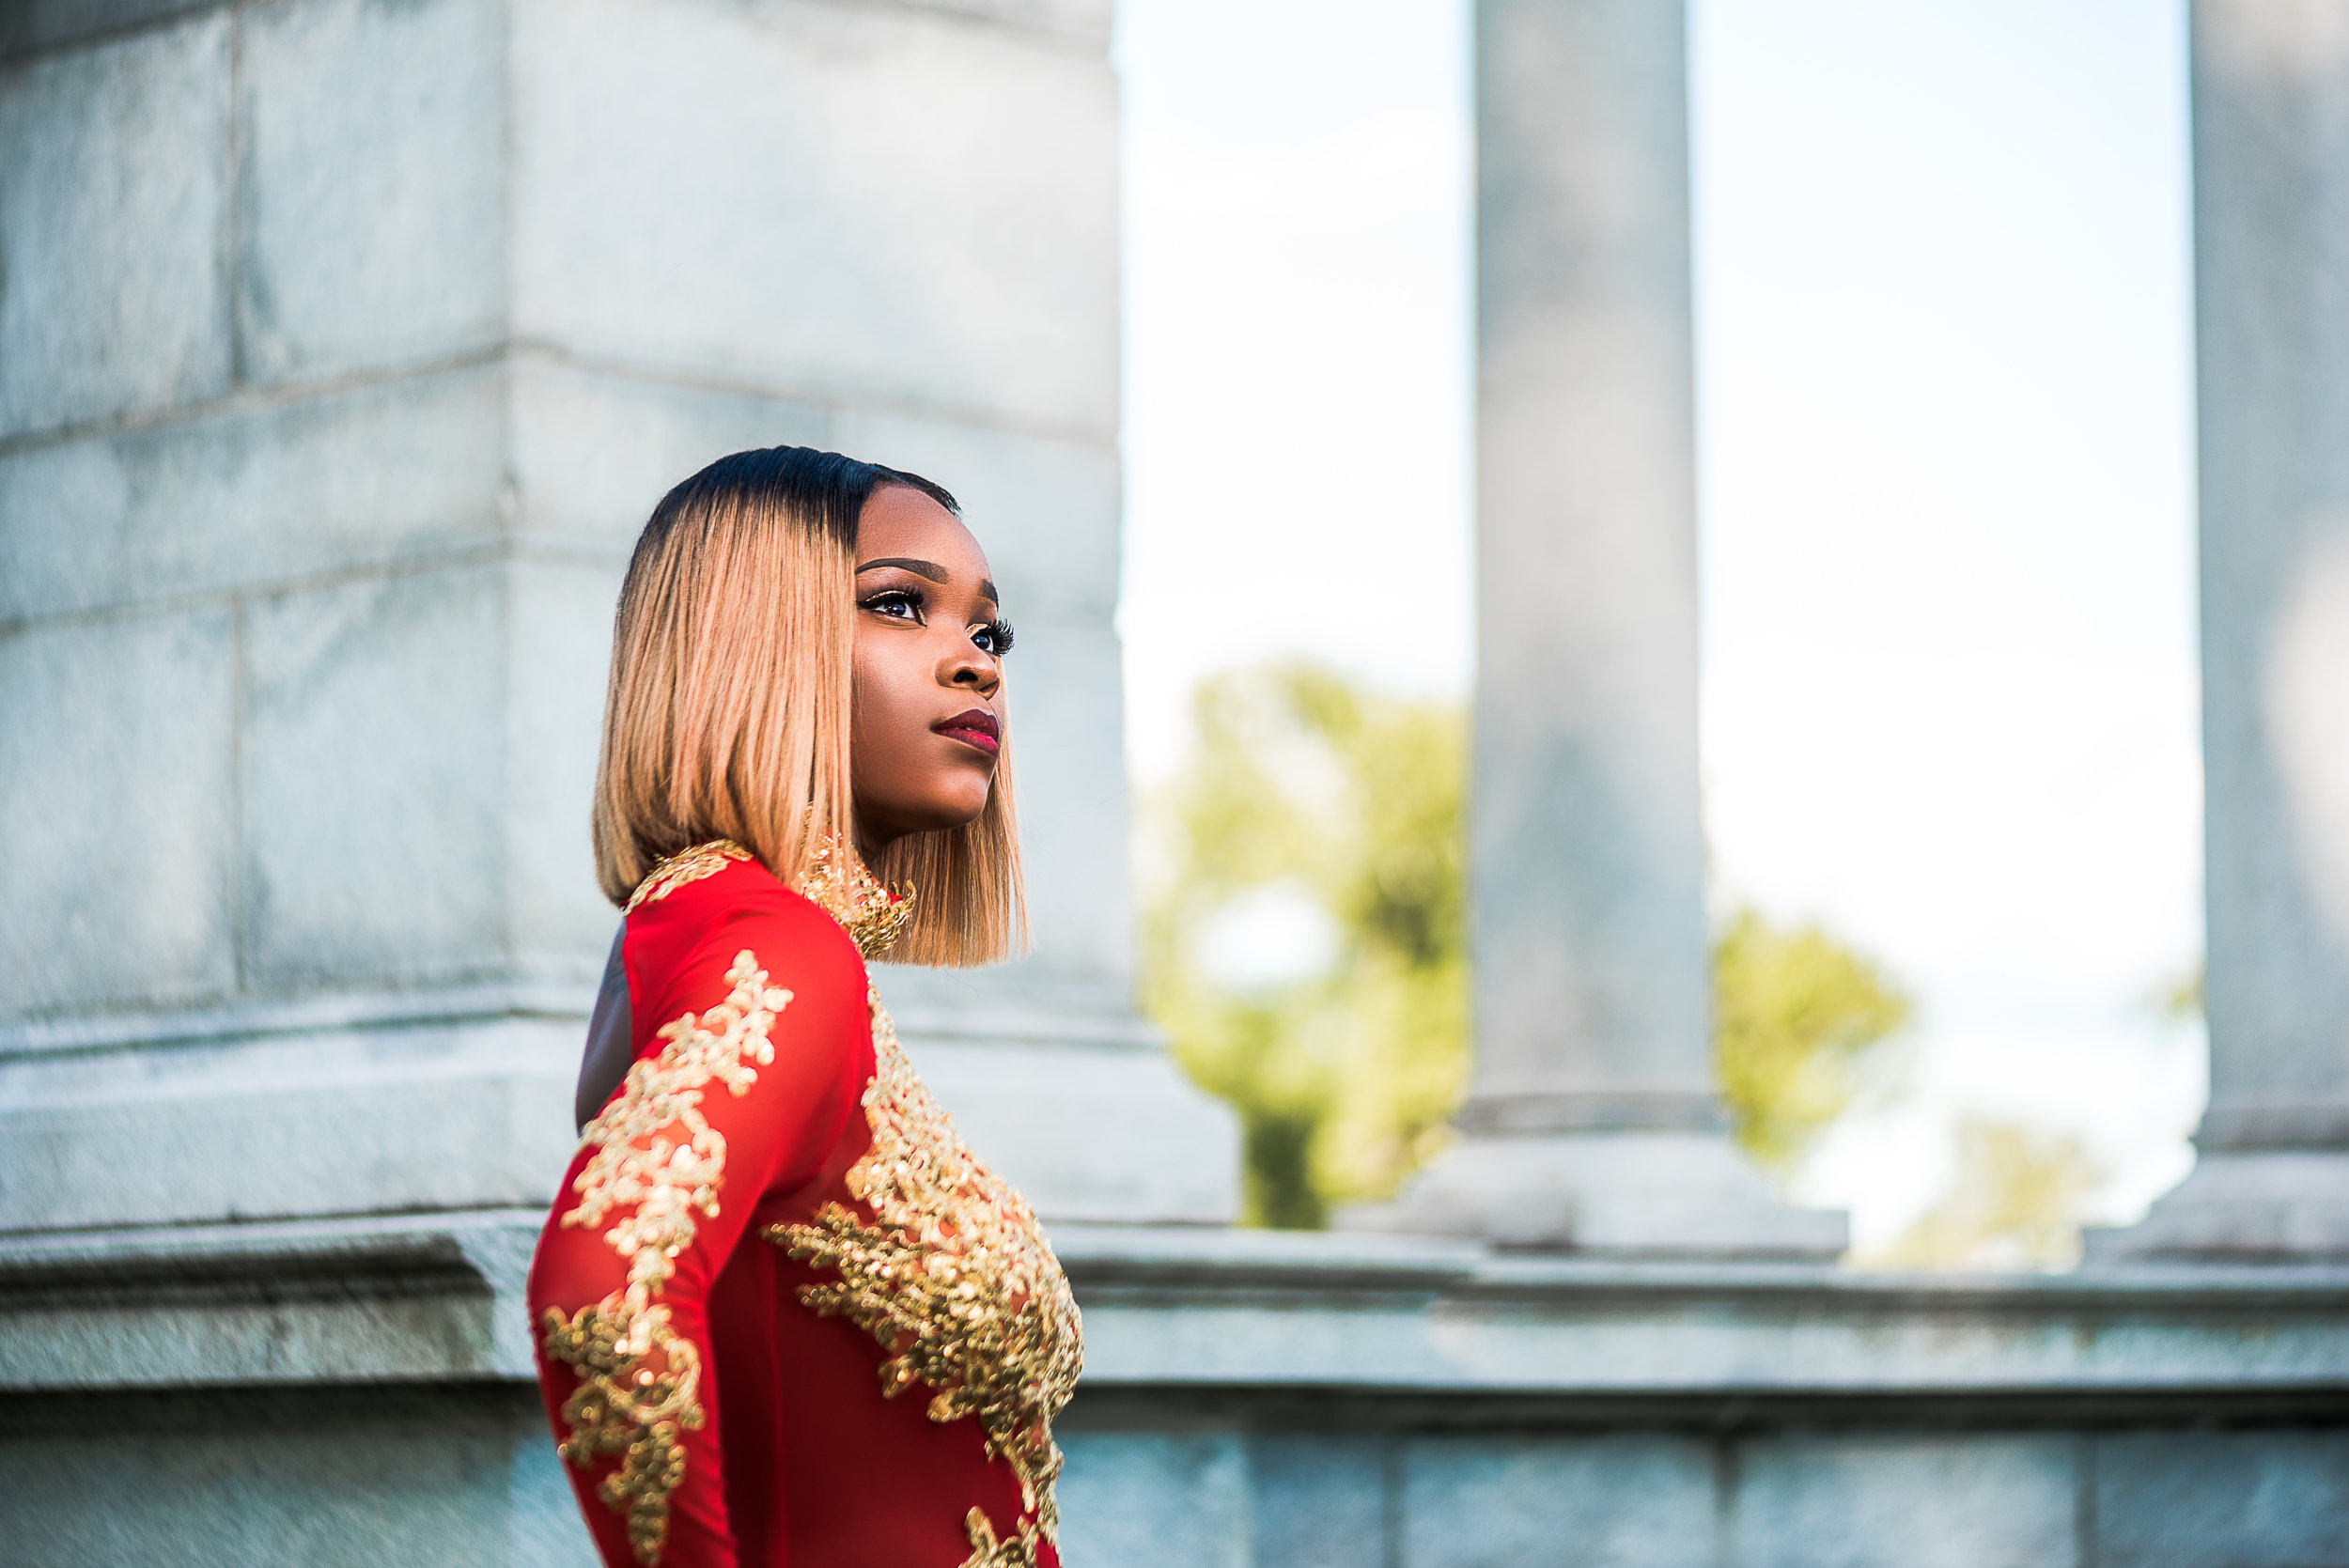 st-louis-photographer-forest park-prom-pictures-3.jpg